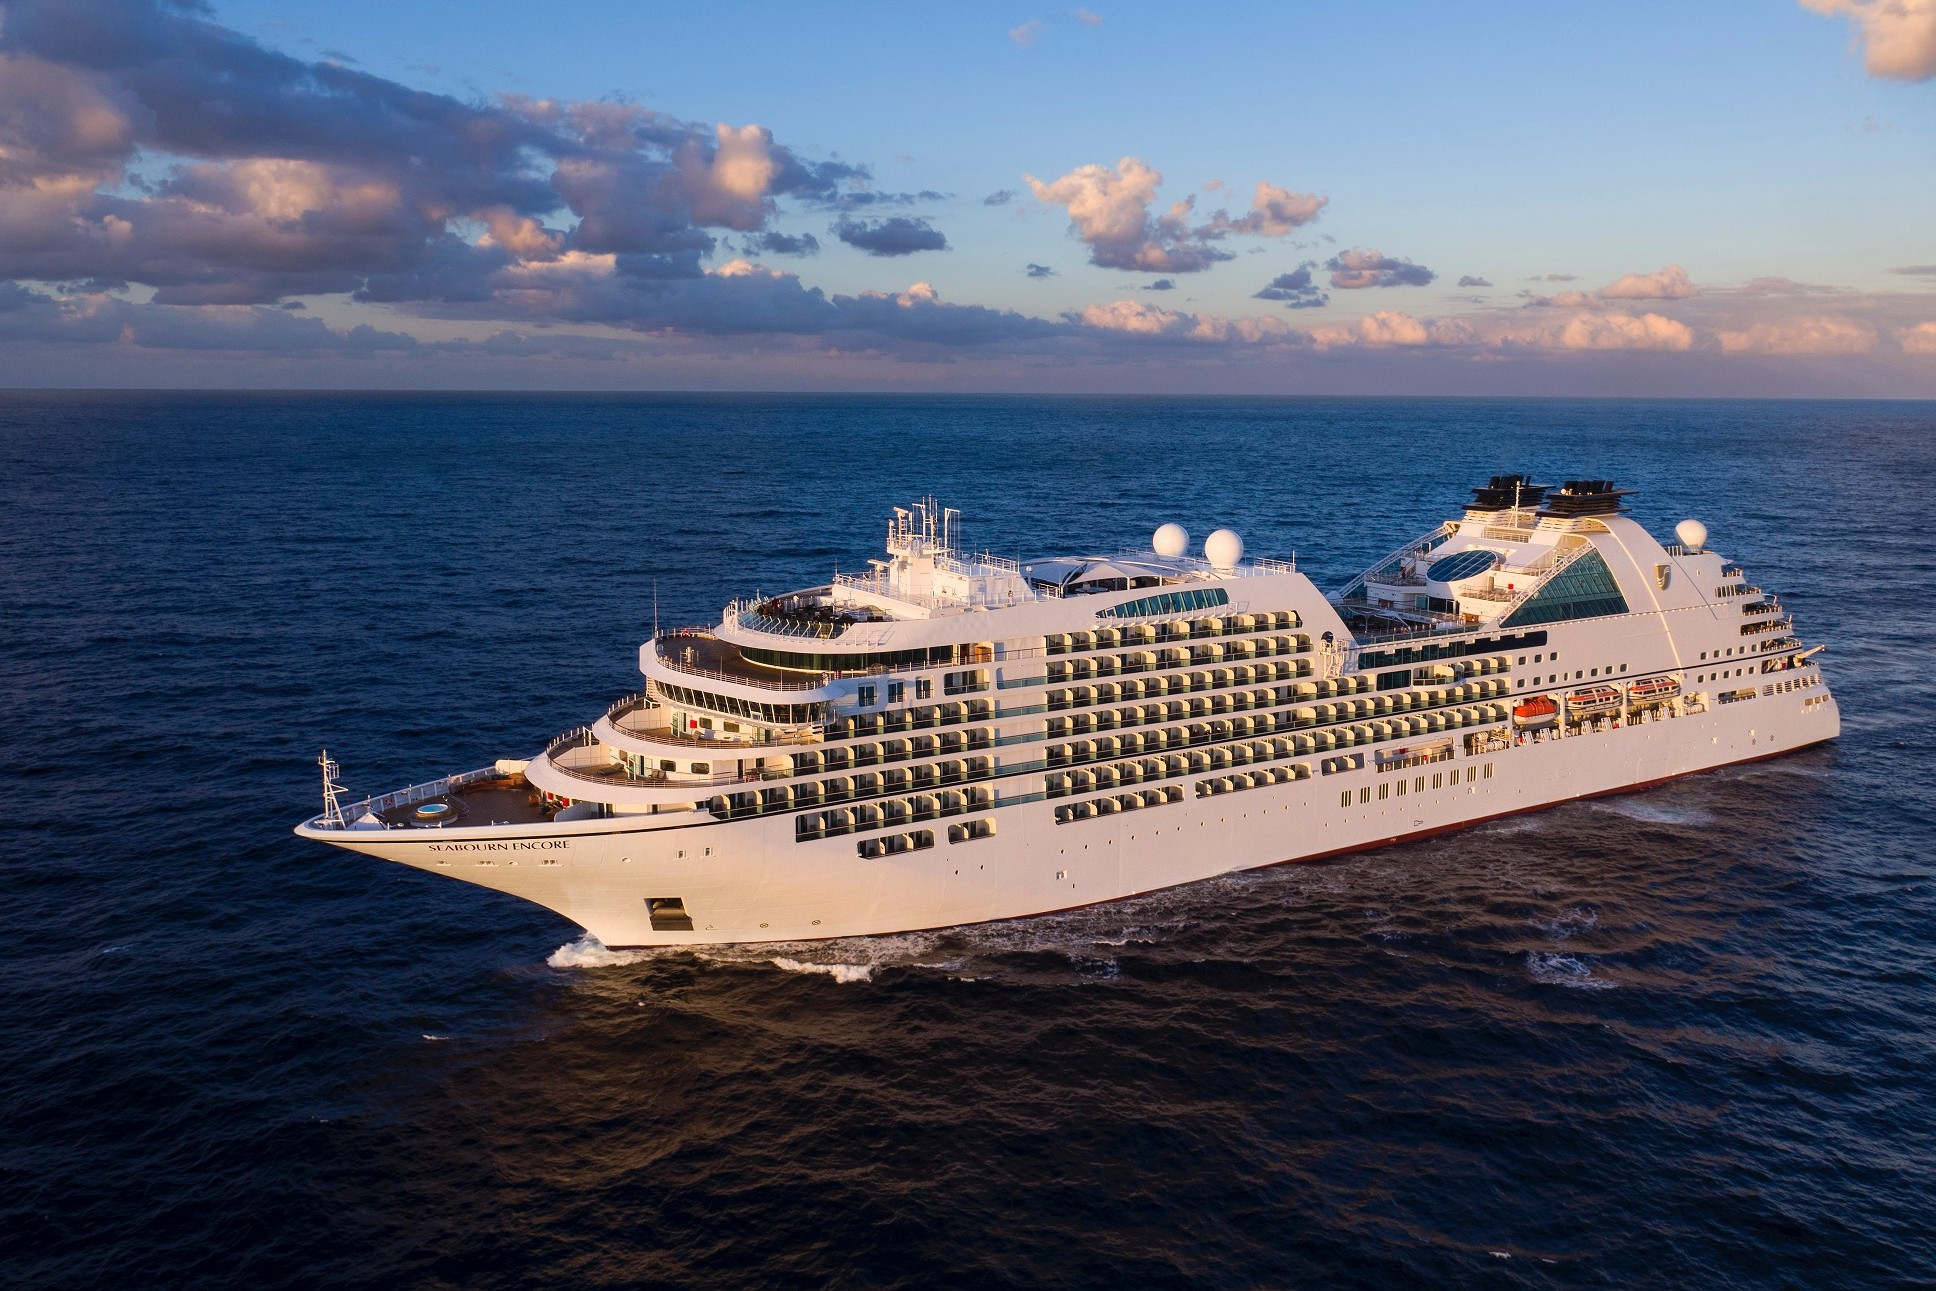 All aboard the Seabourn Encore!